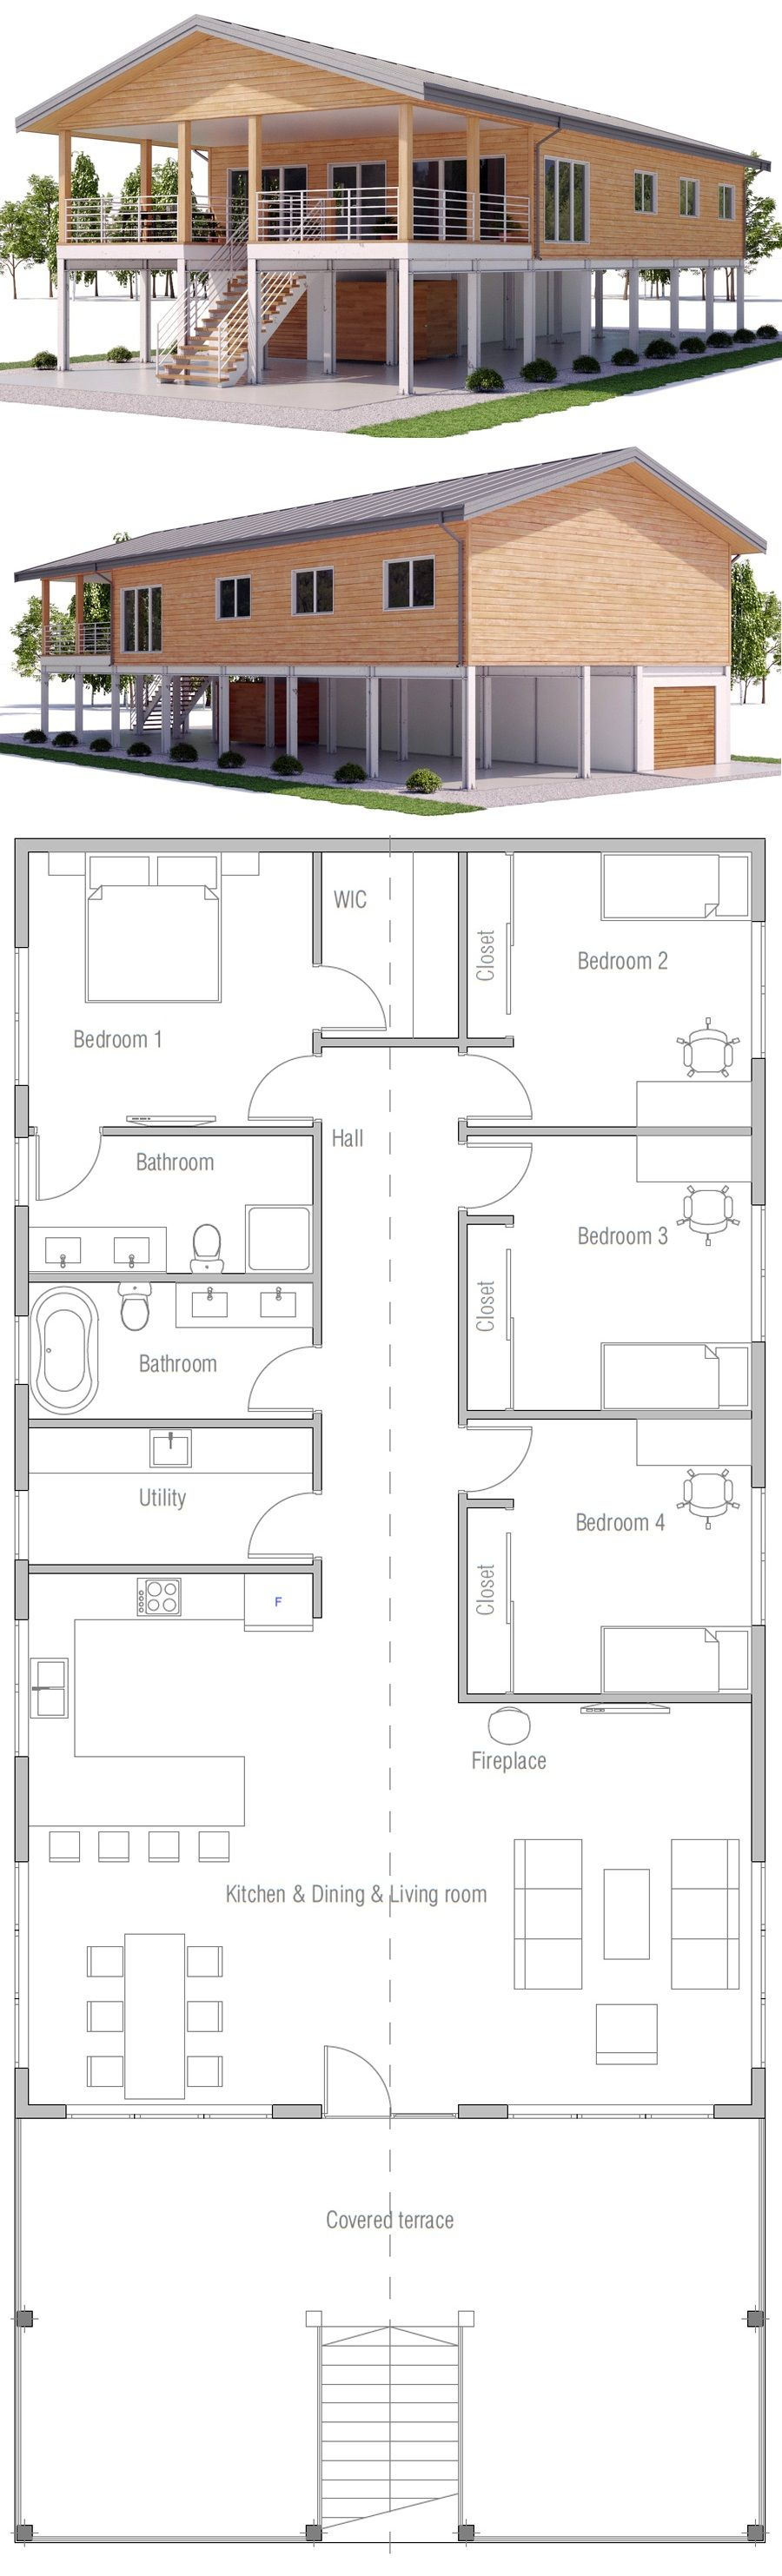 Raised coastal house plan house on piers casas for House plans on piers